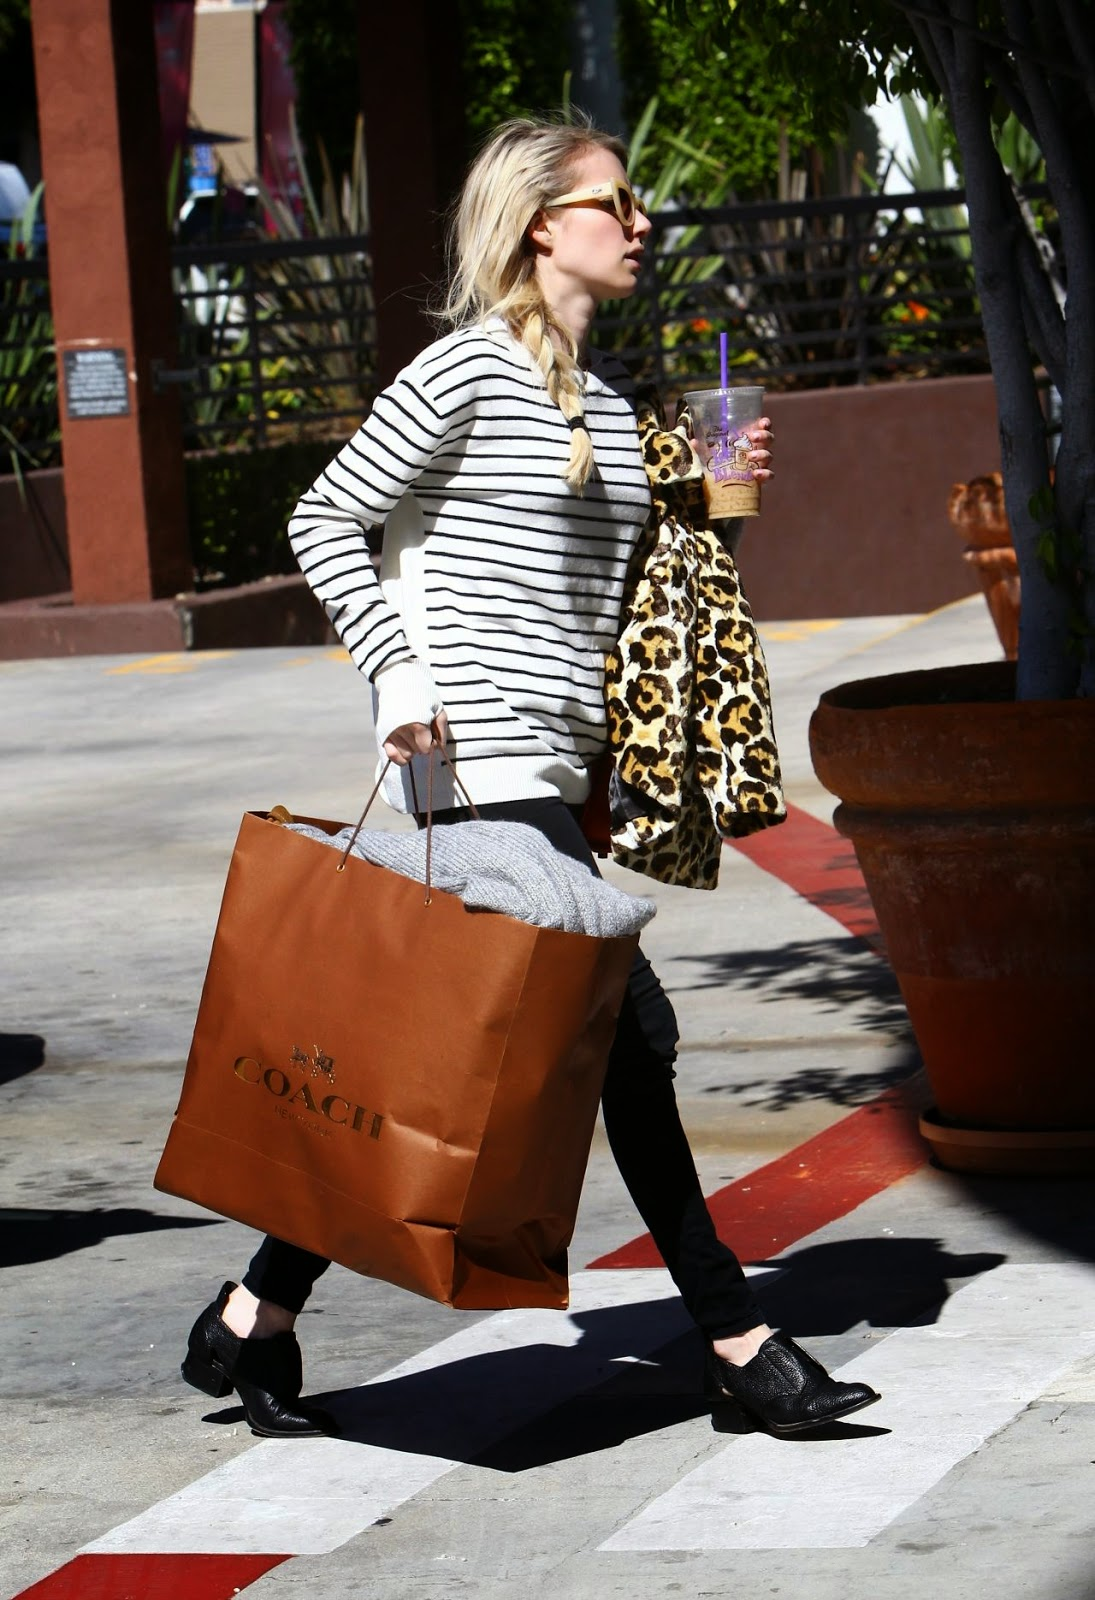 Actress, Singer @ Emma Roberts - Leaving Her Home in Los Angeles